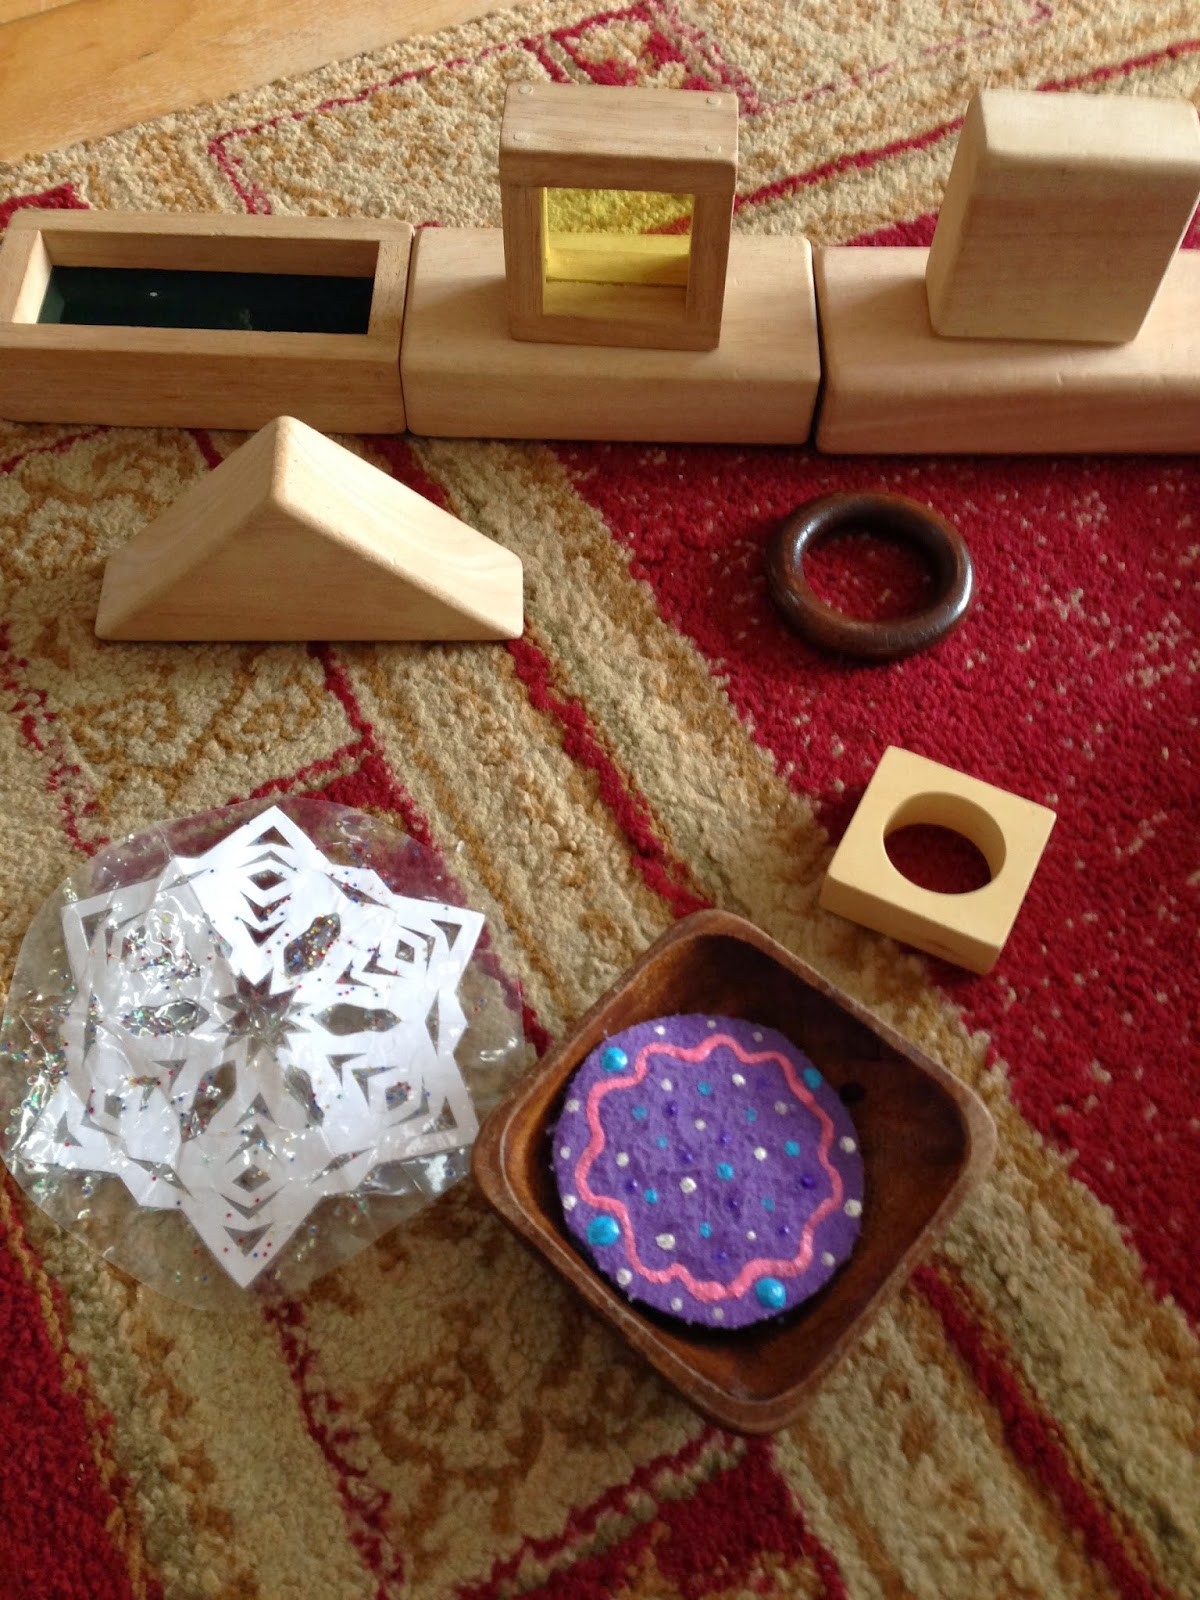 Loose Parts and Open Ended Toys - A Liberating Experience